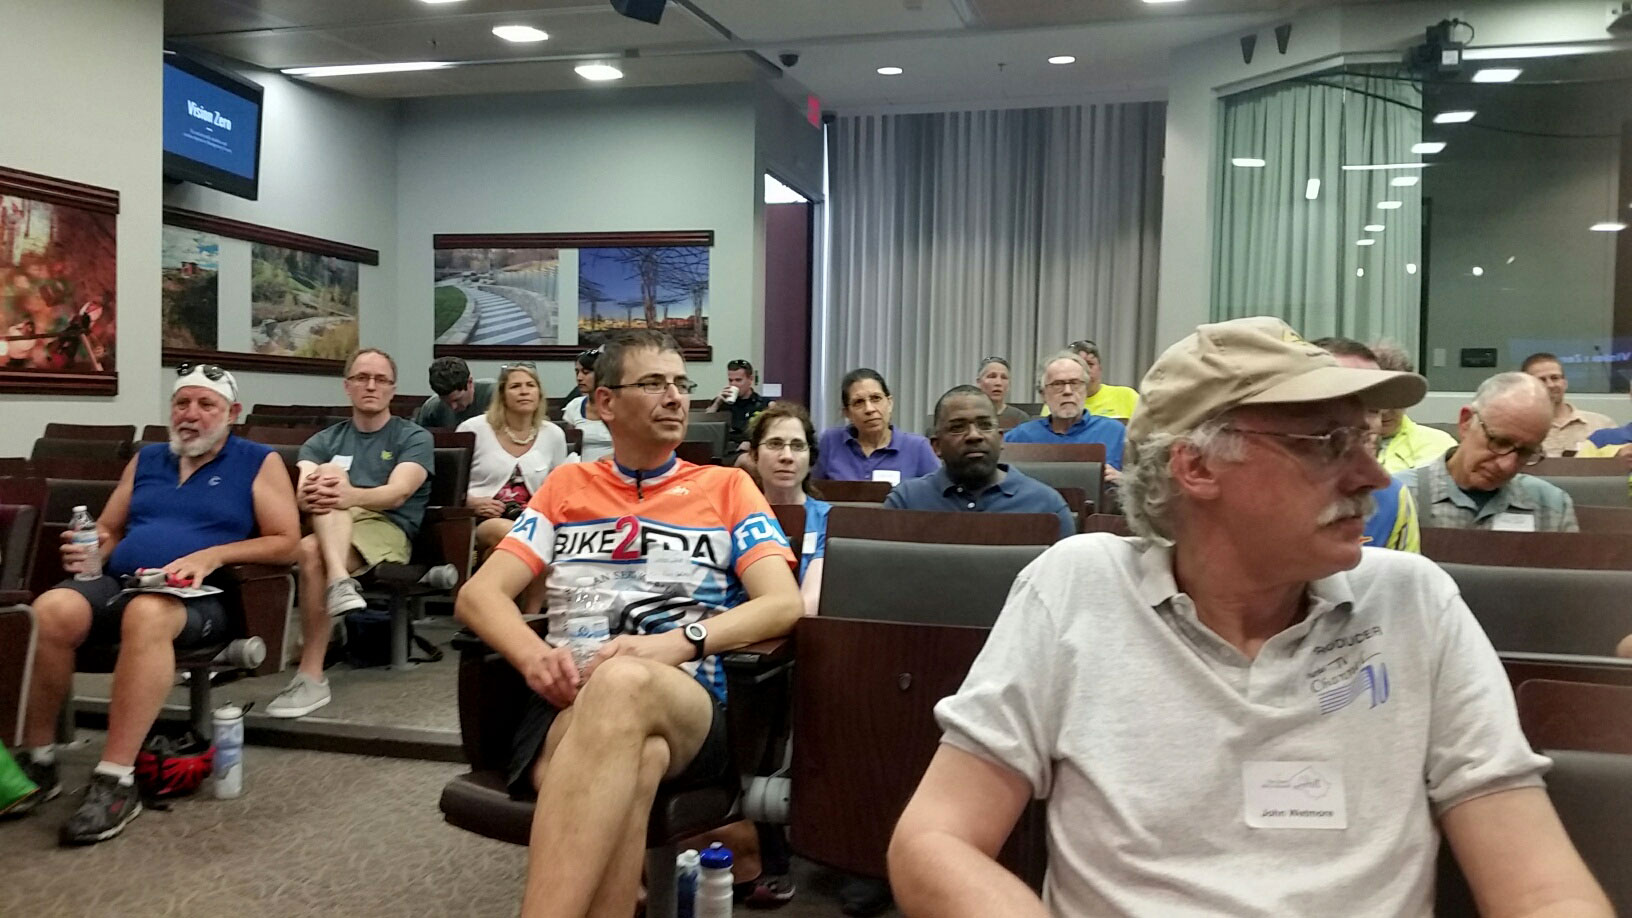 Bike enthusiasts at Montgomery Cooutny Council BUilding in Rockville, Md. to talk progress on bike issues and help shape future projects.(WTOP/Kathy Stewart)